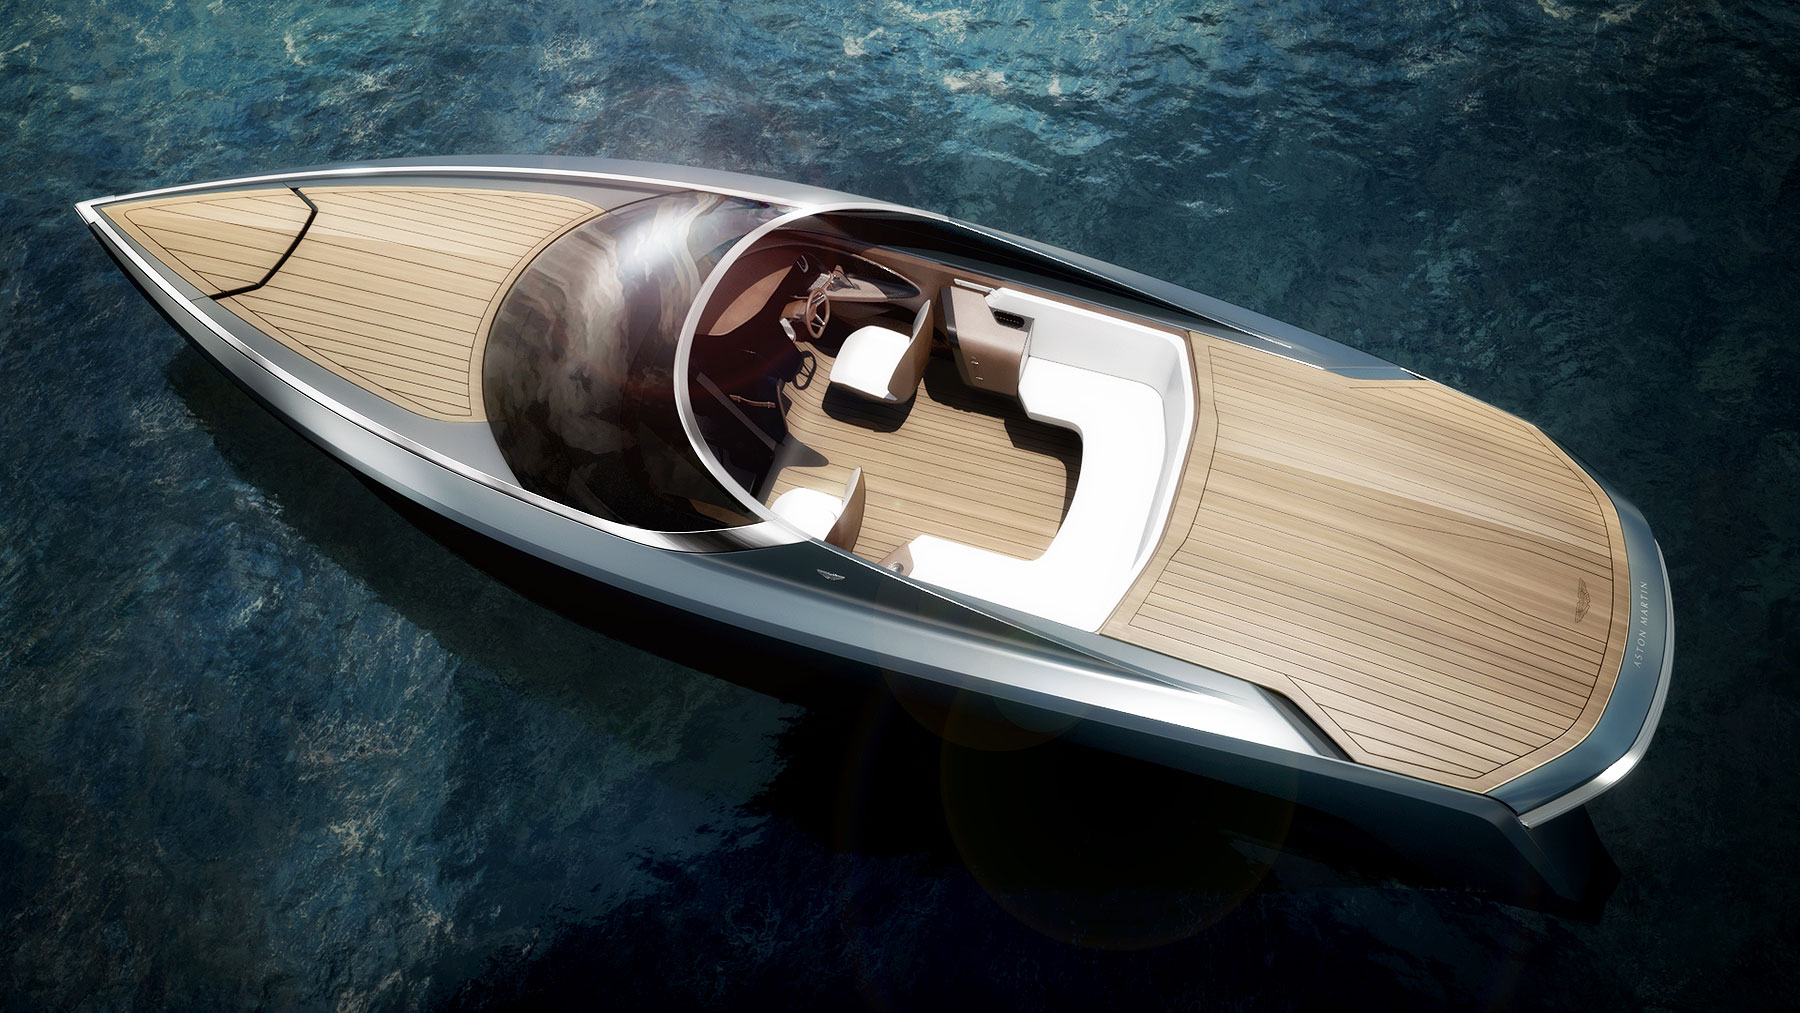 AM37 – First powerboat developed by Aston Martin and Quintessence Yachts